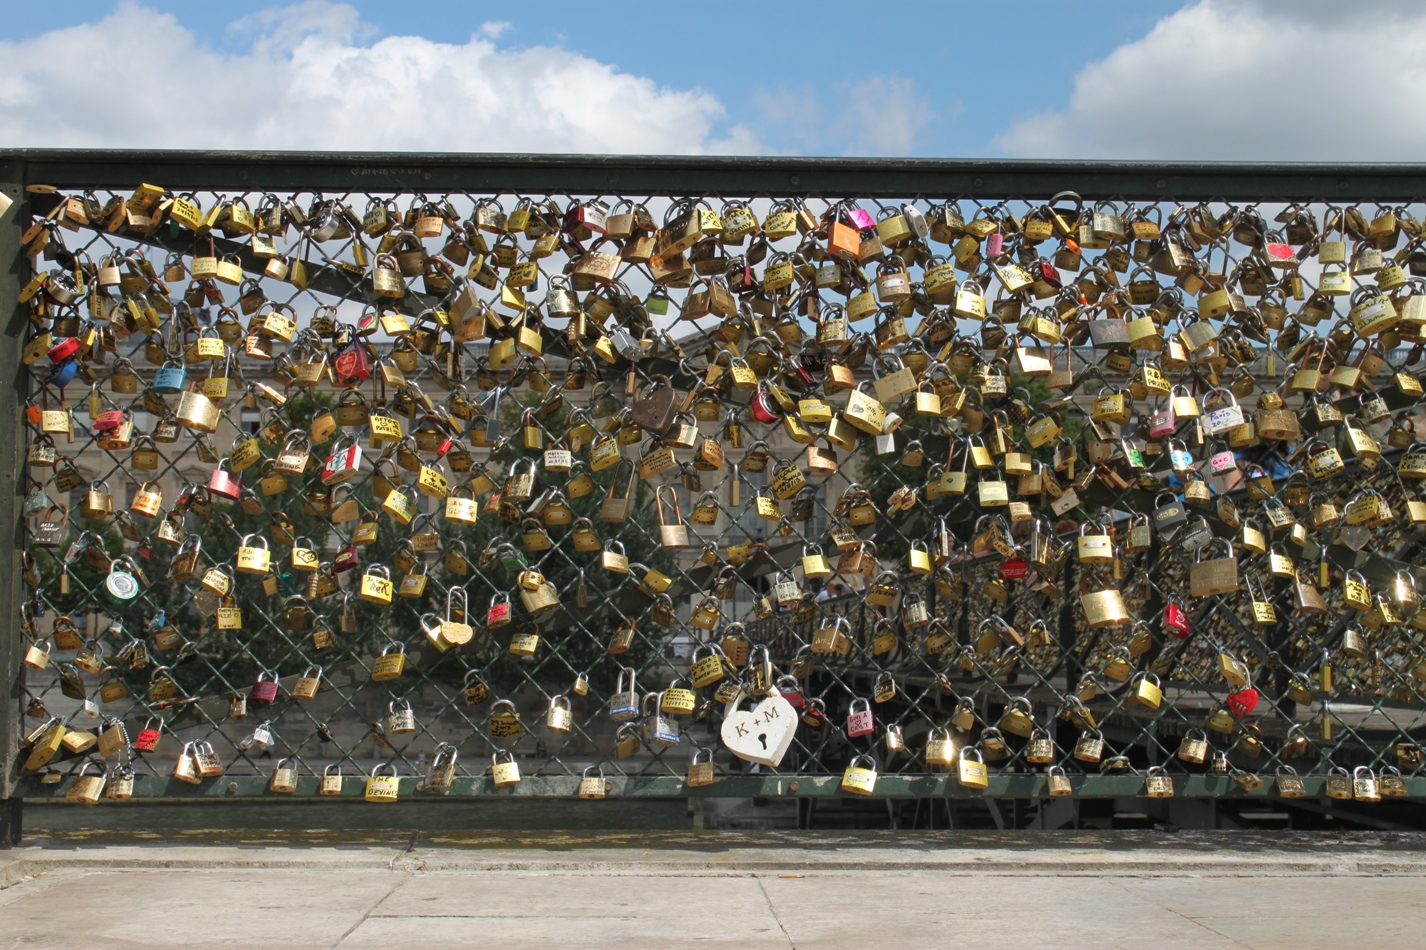 Paris love locks, locksmiths